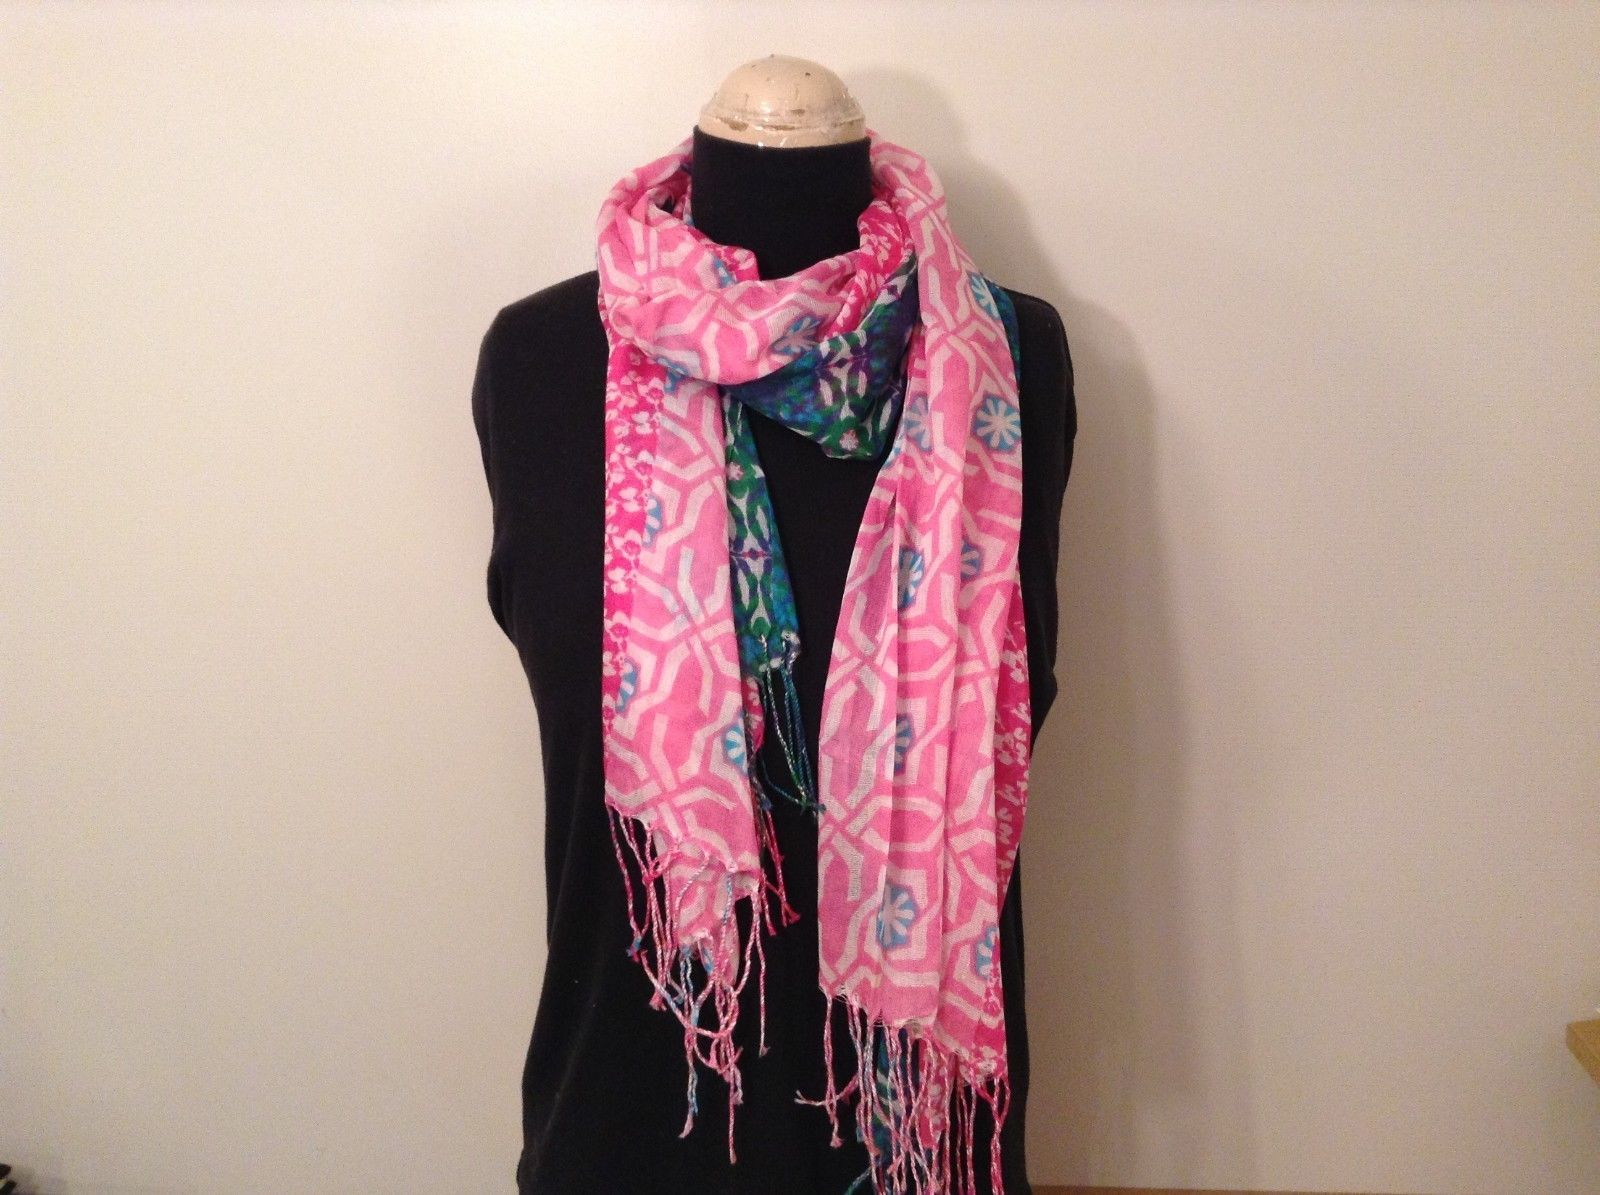 Batik Style Oblong light weight Spring Scarf w fringe  in choice of colors